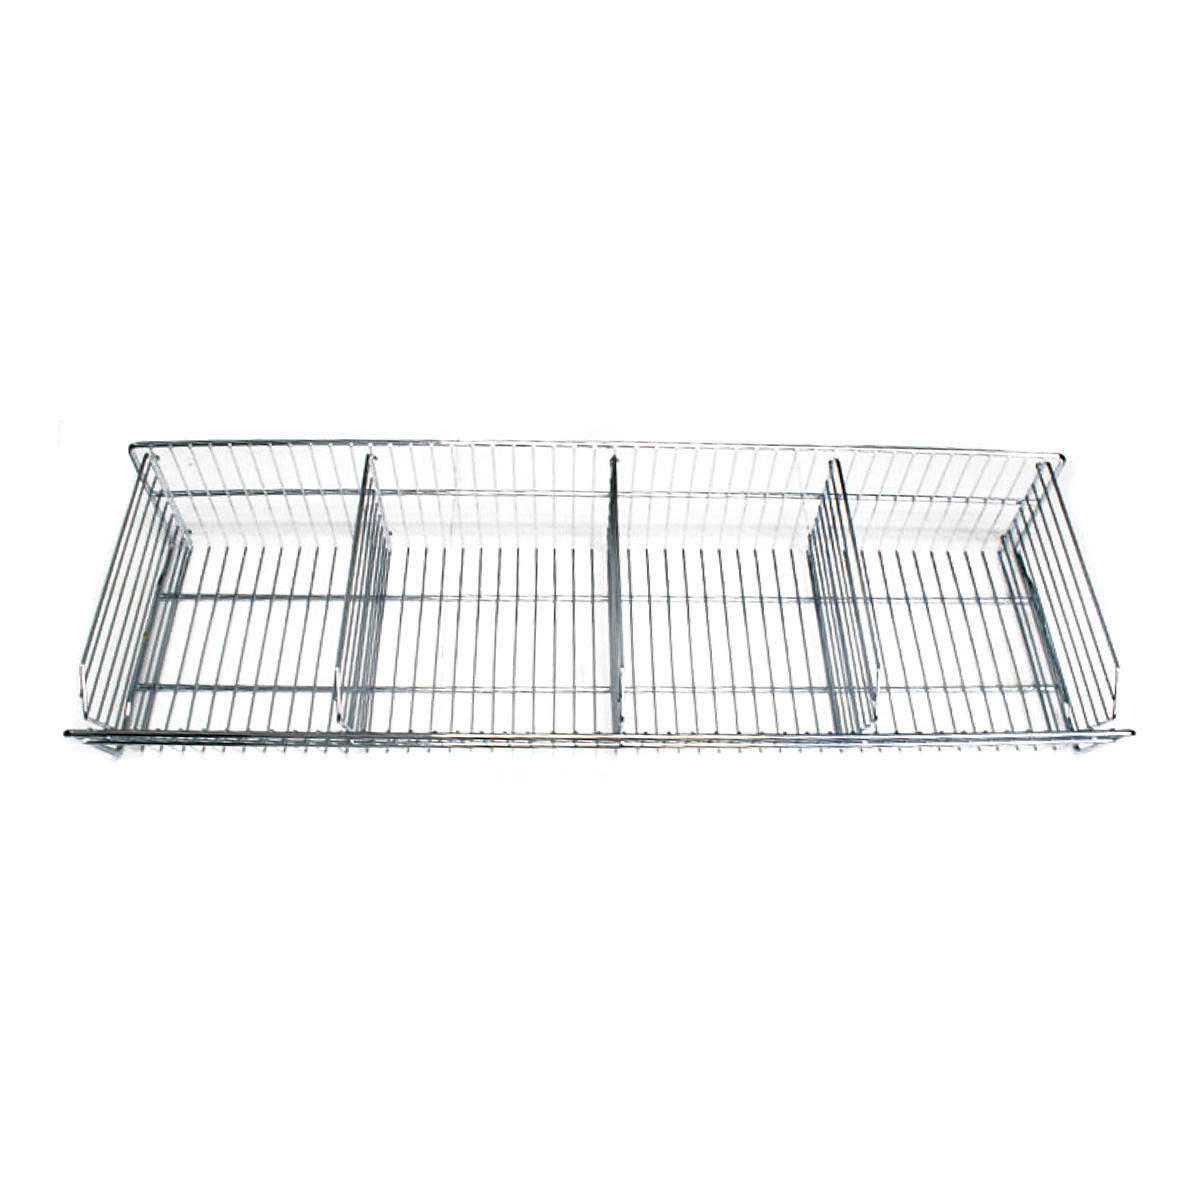 4' (W) Wire Basket with Dividers Ideal for Hub Caps and Lug Nut Covers